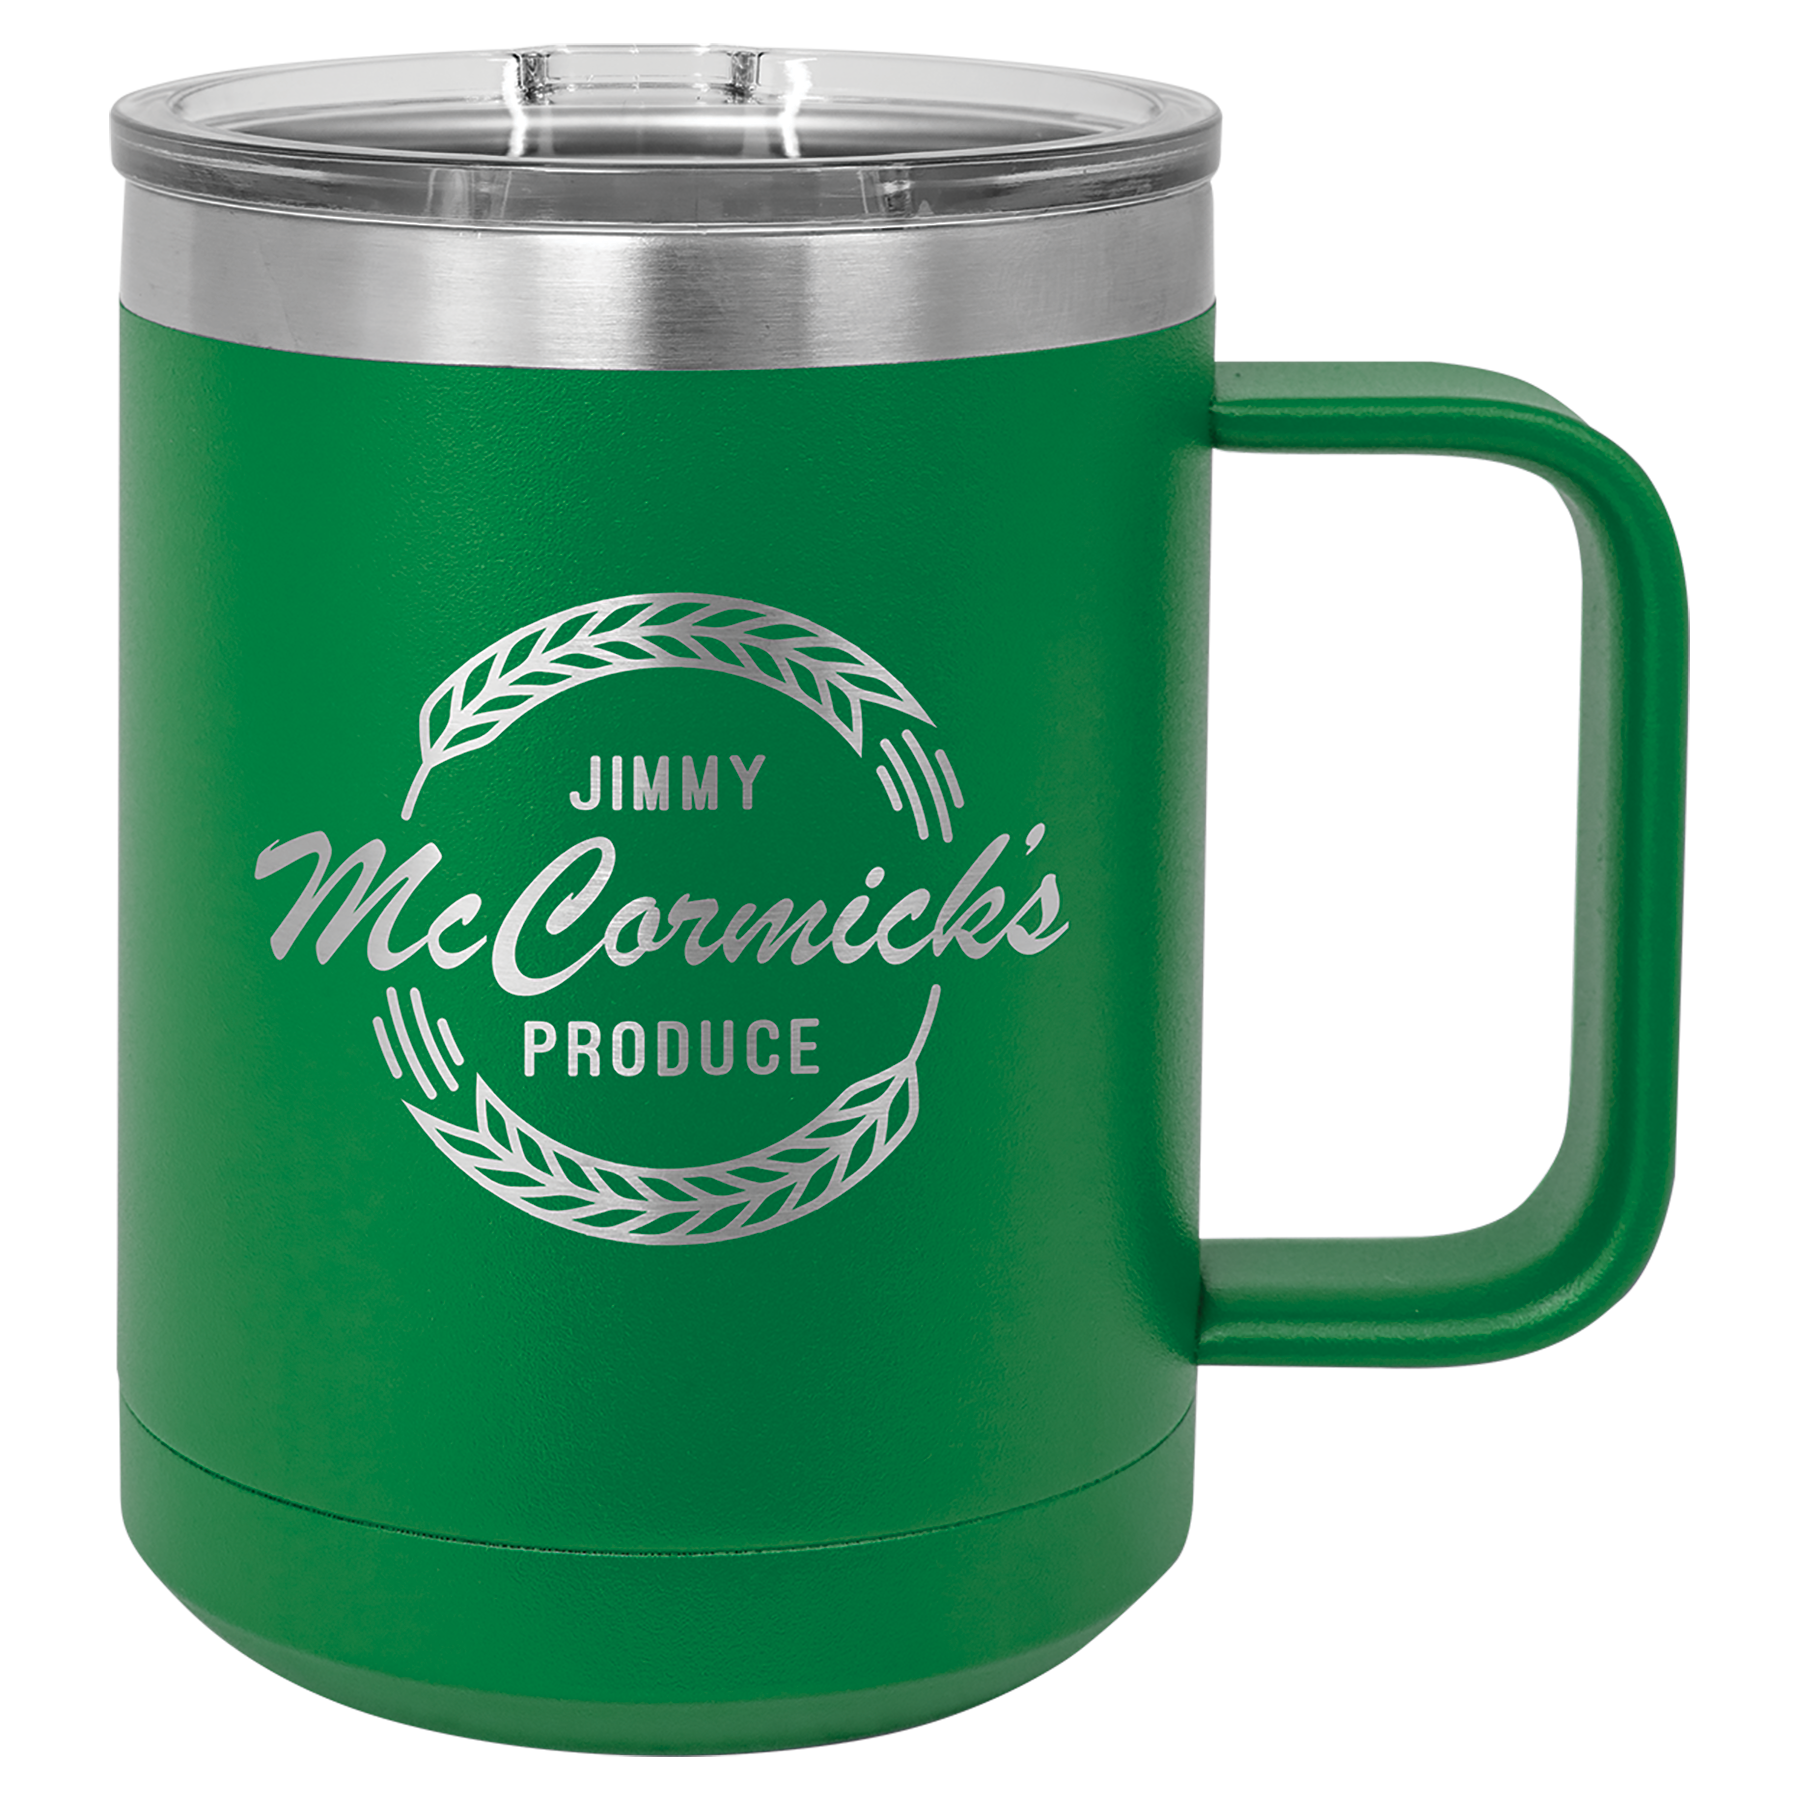 Mug tumbler in green with text on it